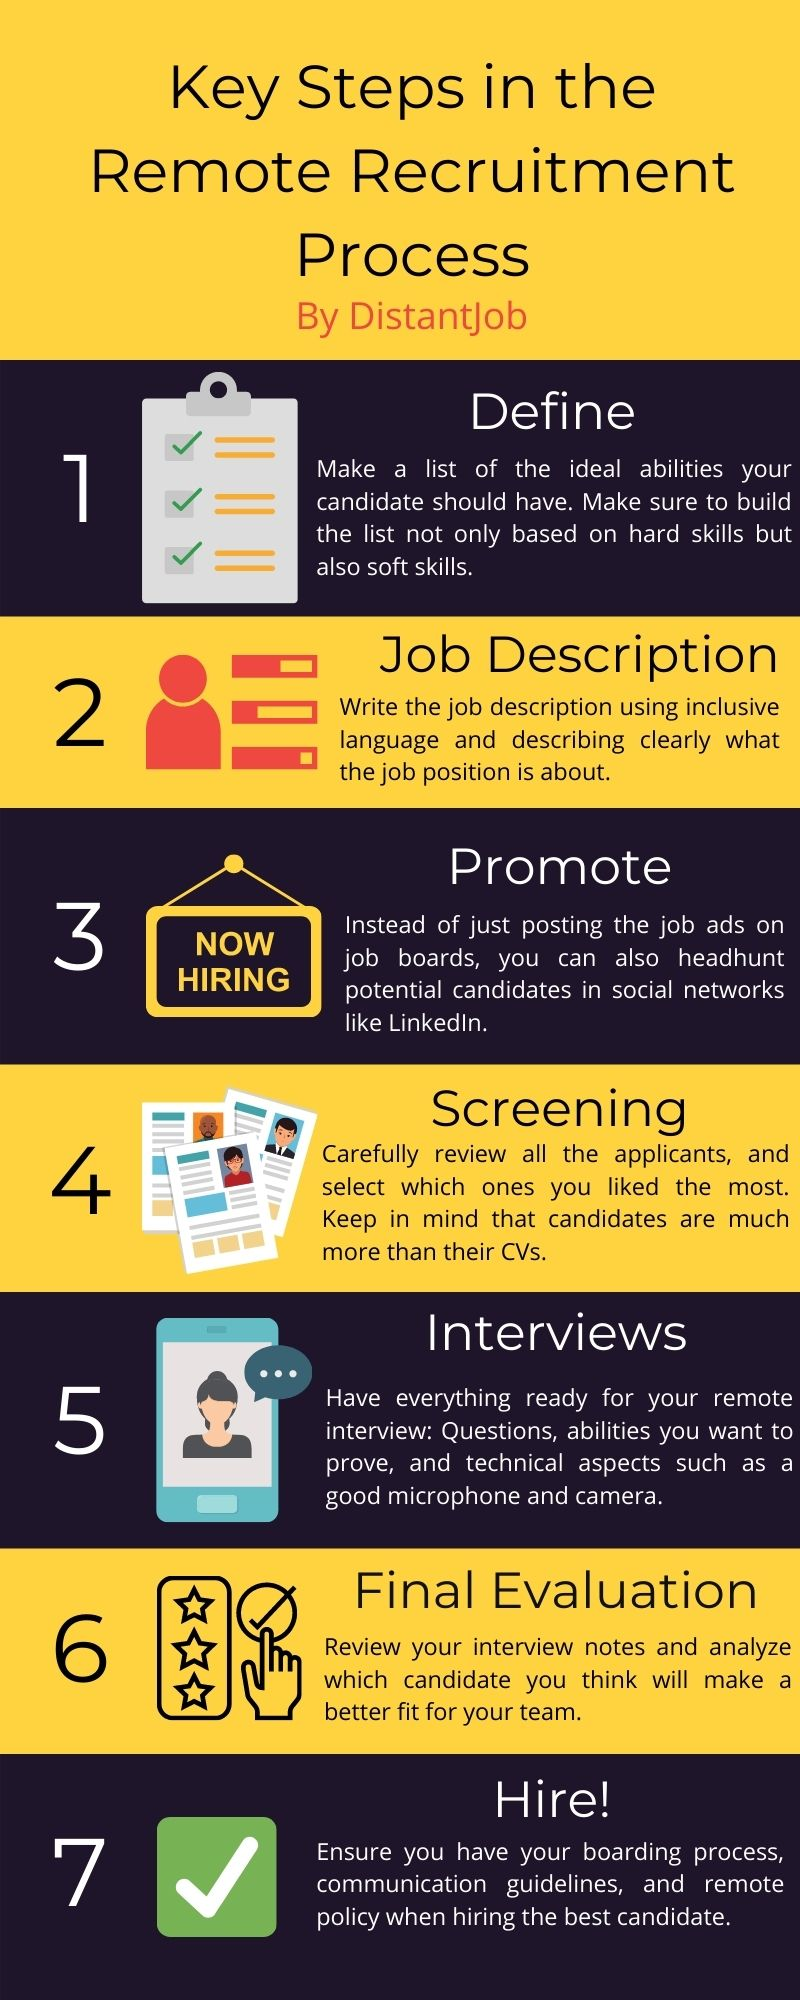 Key steps in the remote recruitment process